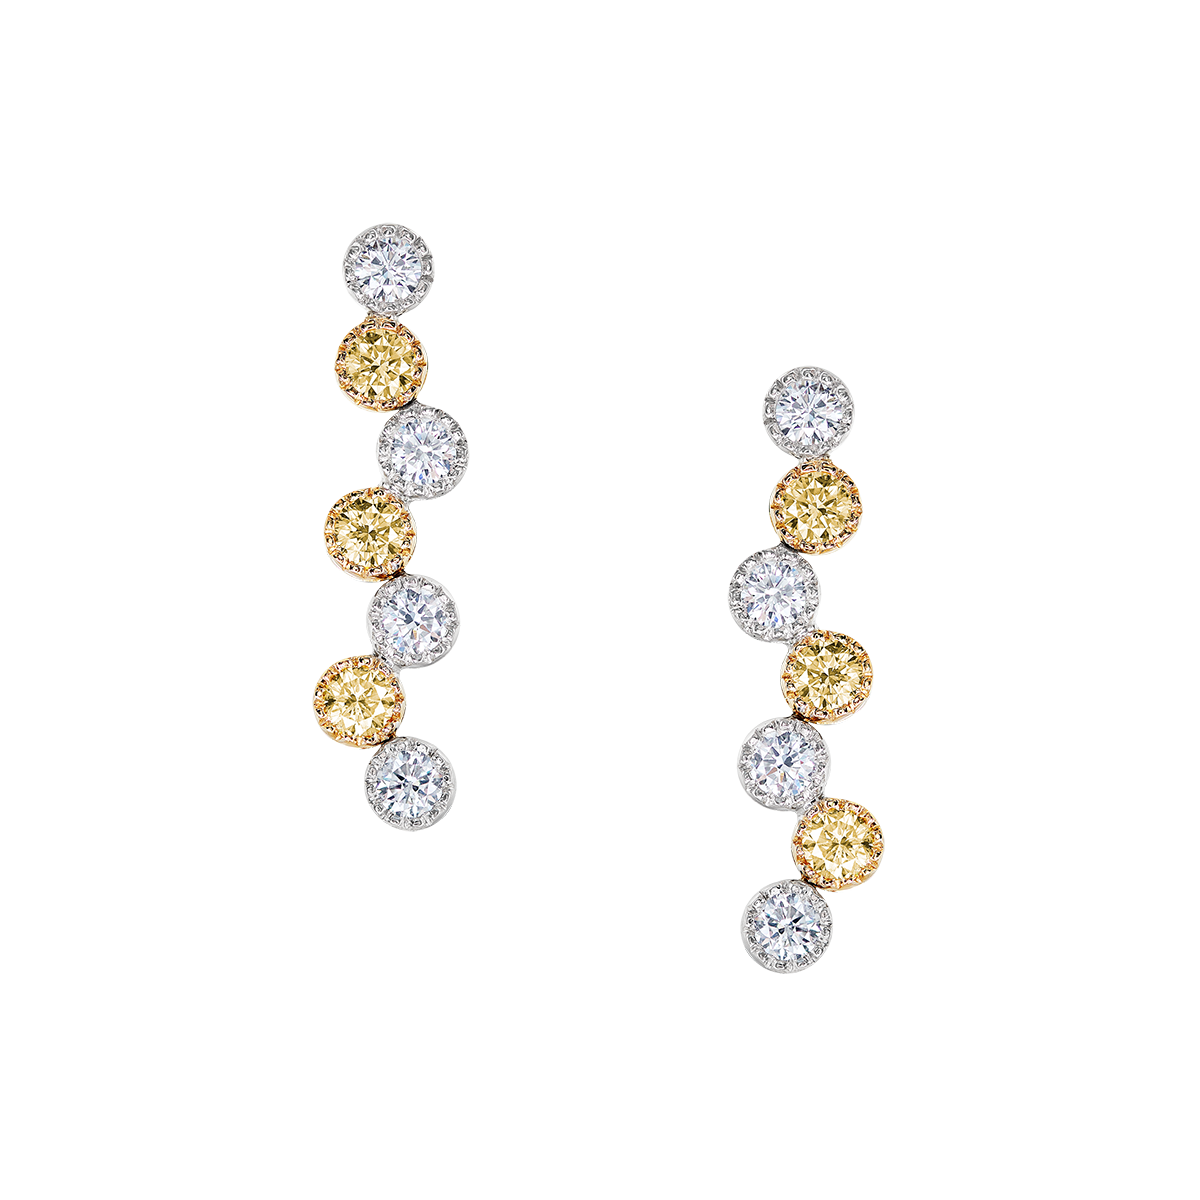 1.04克拉 黃鑽耳環